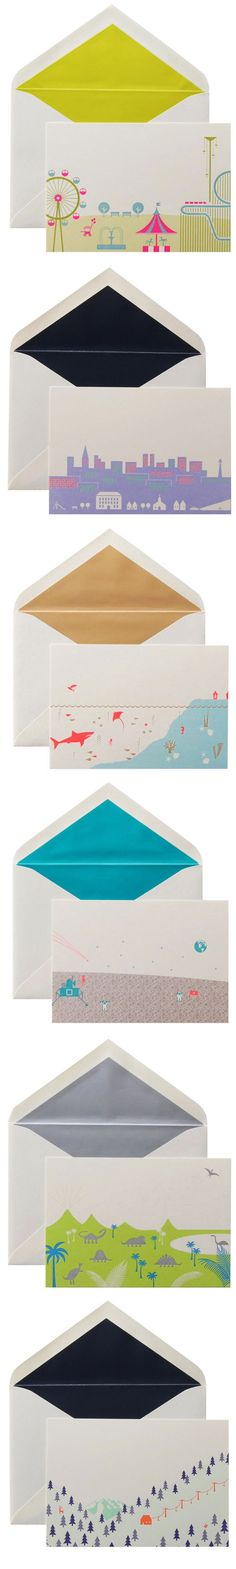 Winged Wheel cards http://www.winged-wheel.co.jp/en/index.html #stationery #design